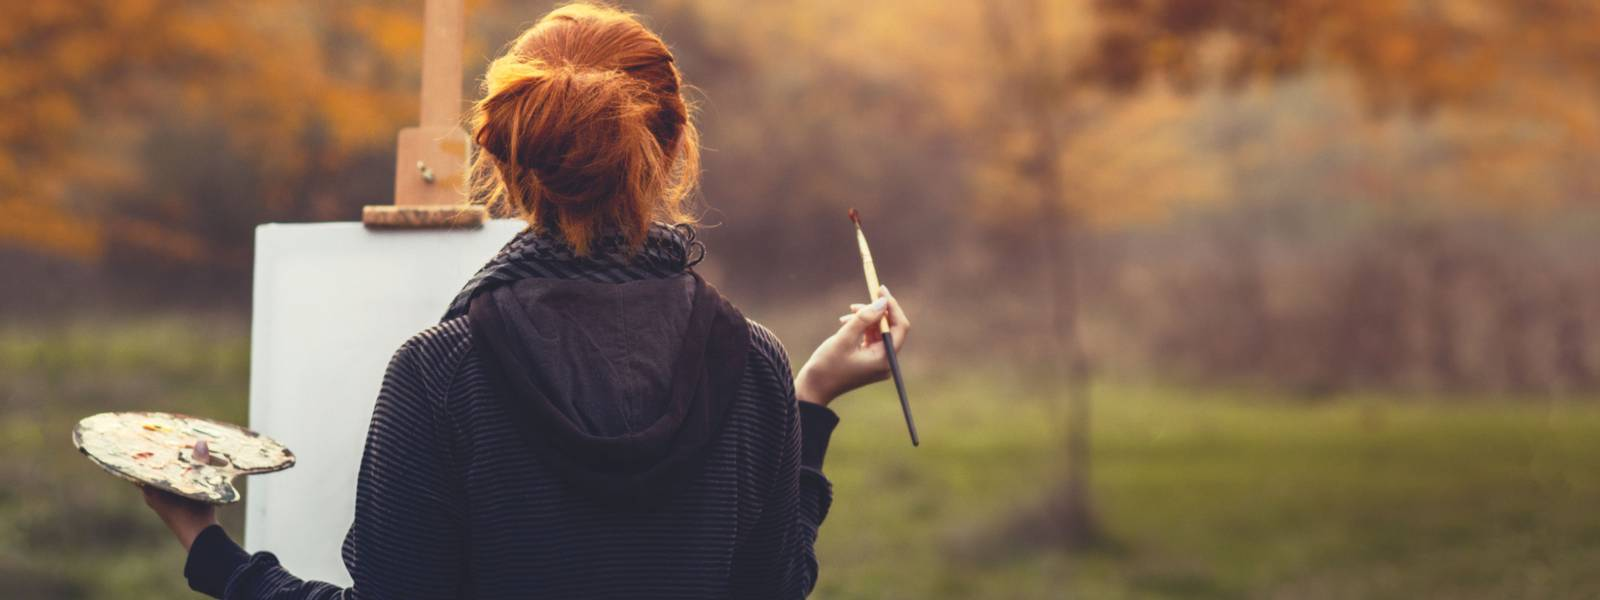 redhead girl drawing a picture on an easel in nature, young woman with a paint brush and a palette among autumn trees, a con…